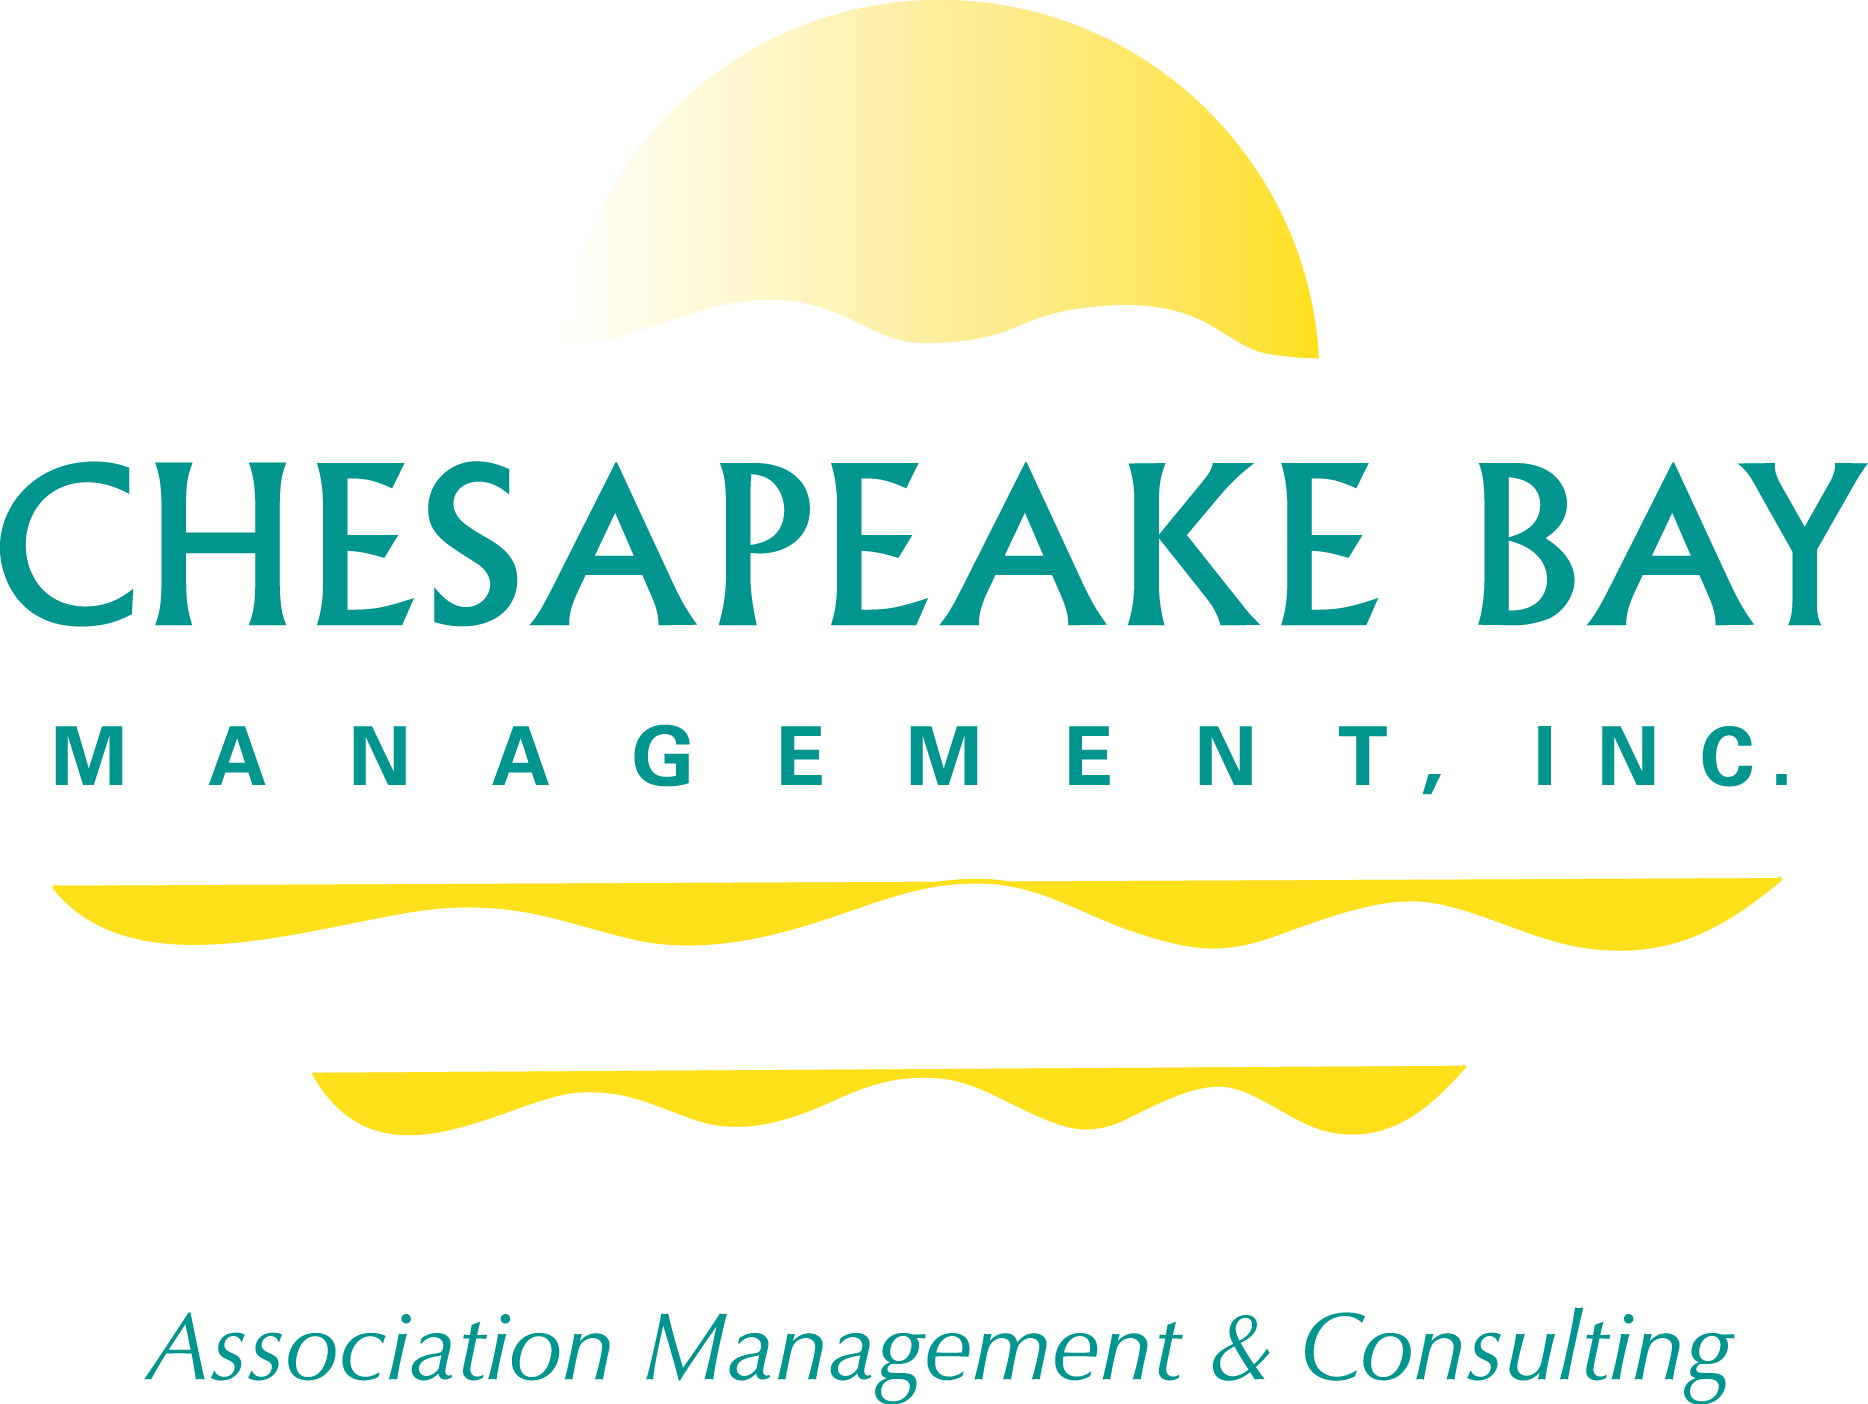 Chesapeake Bay Management